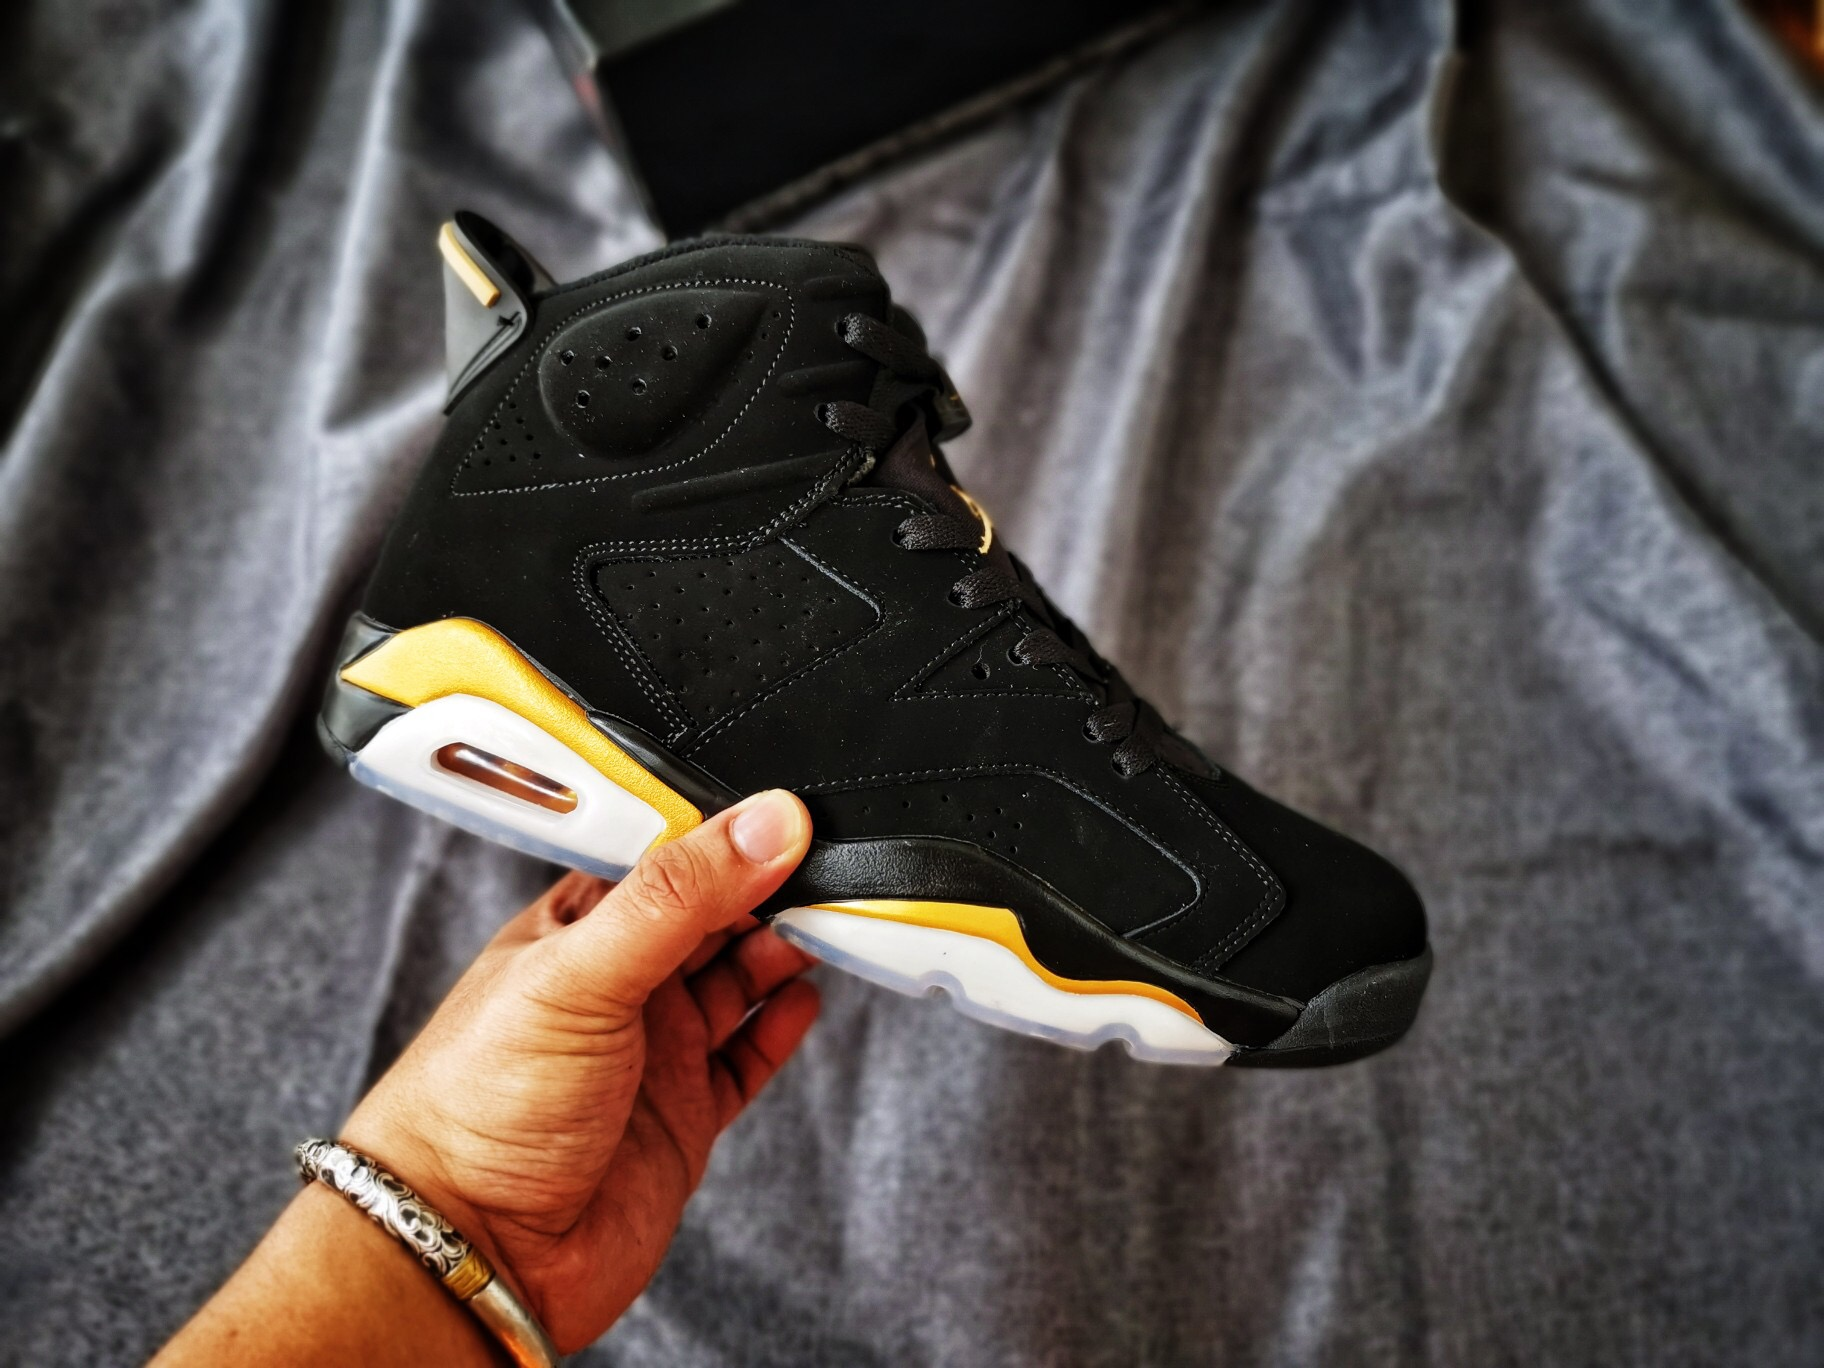 New Air Jordan 6 Retro Black Gold